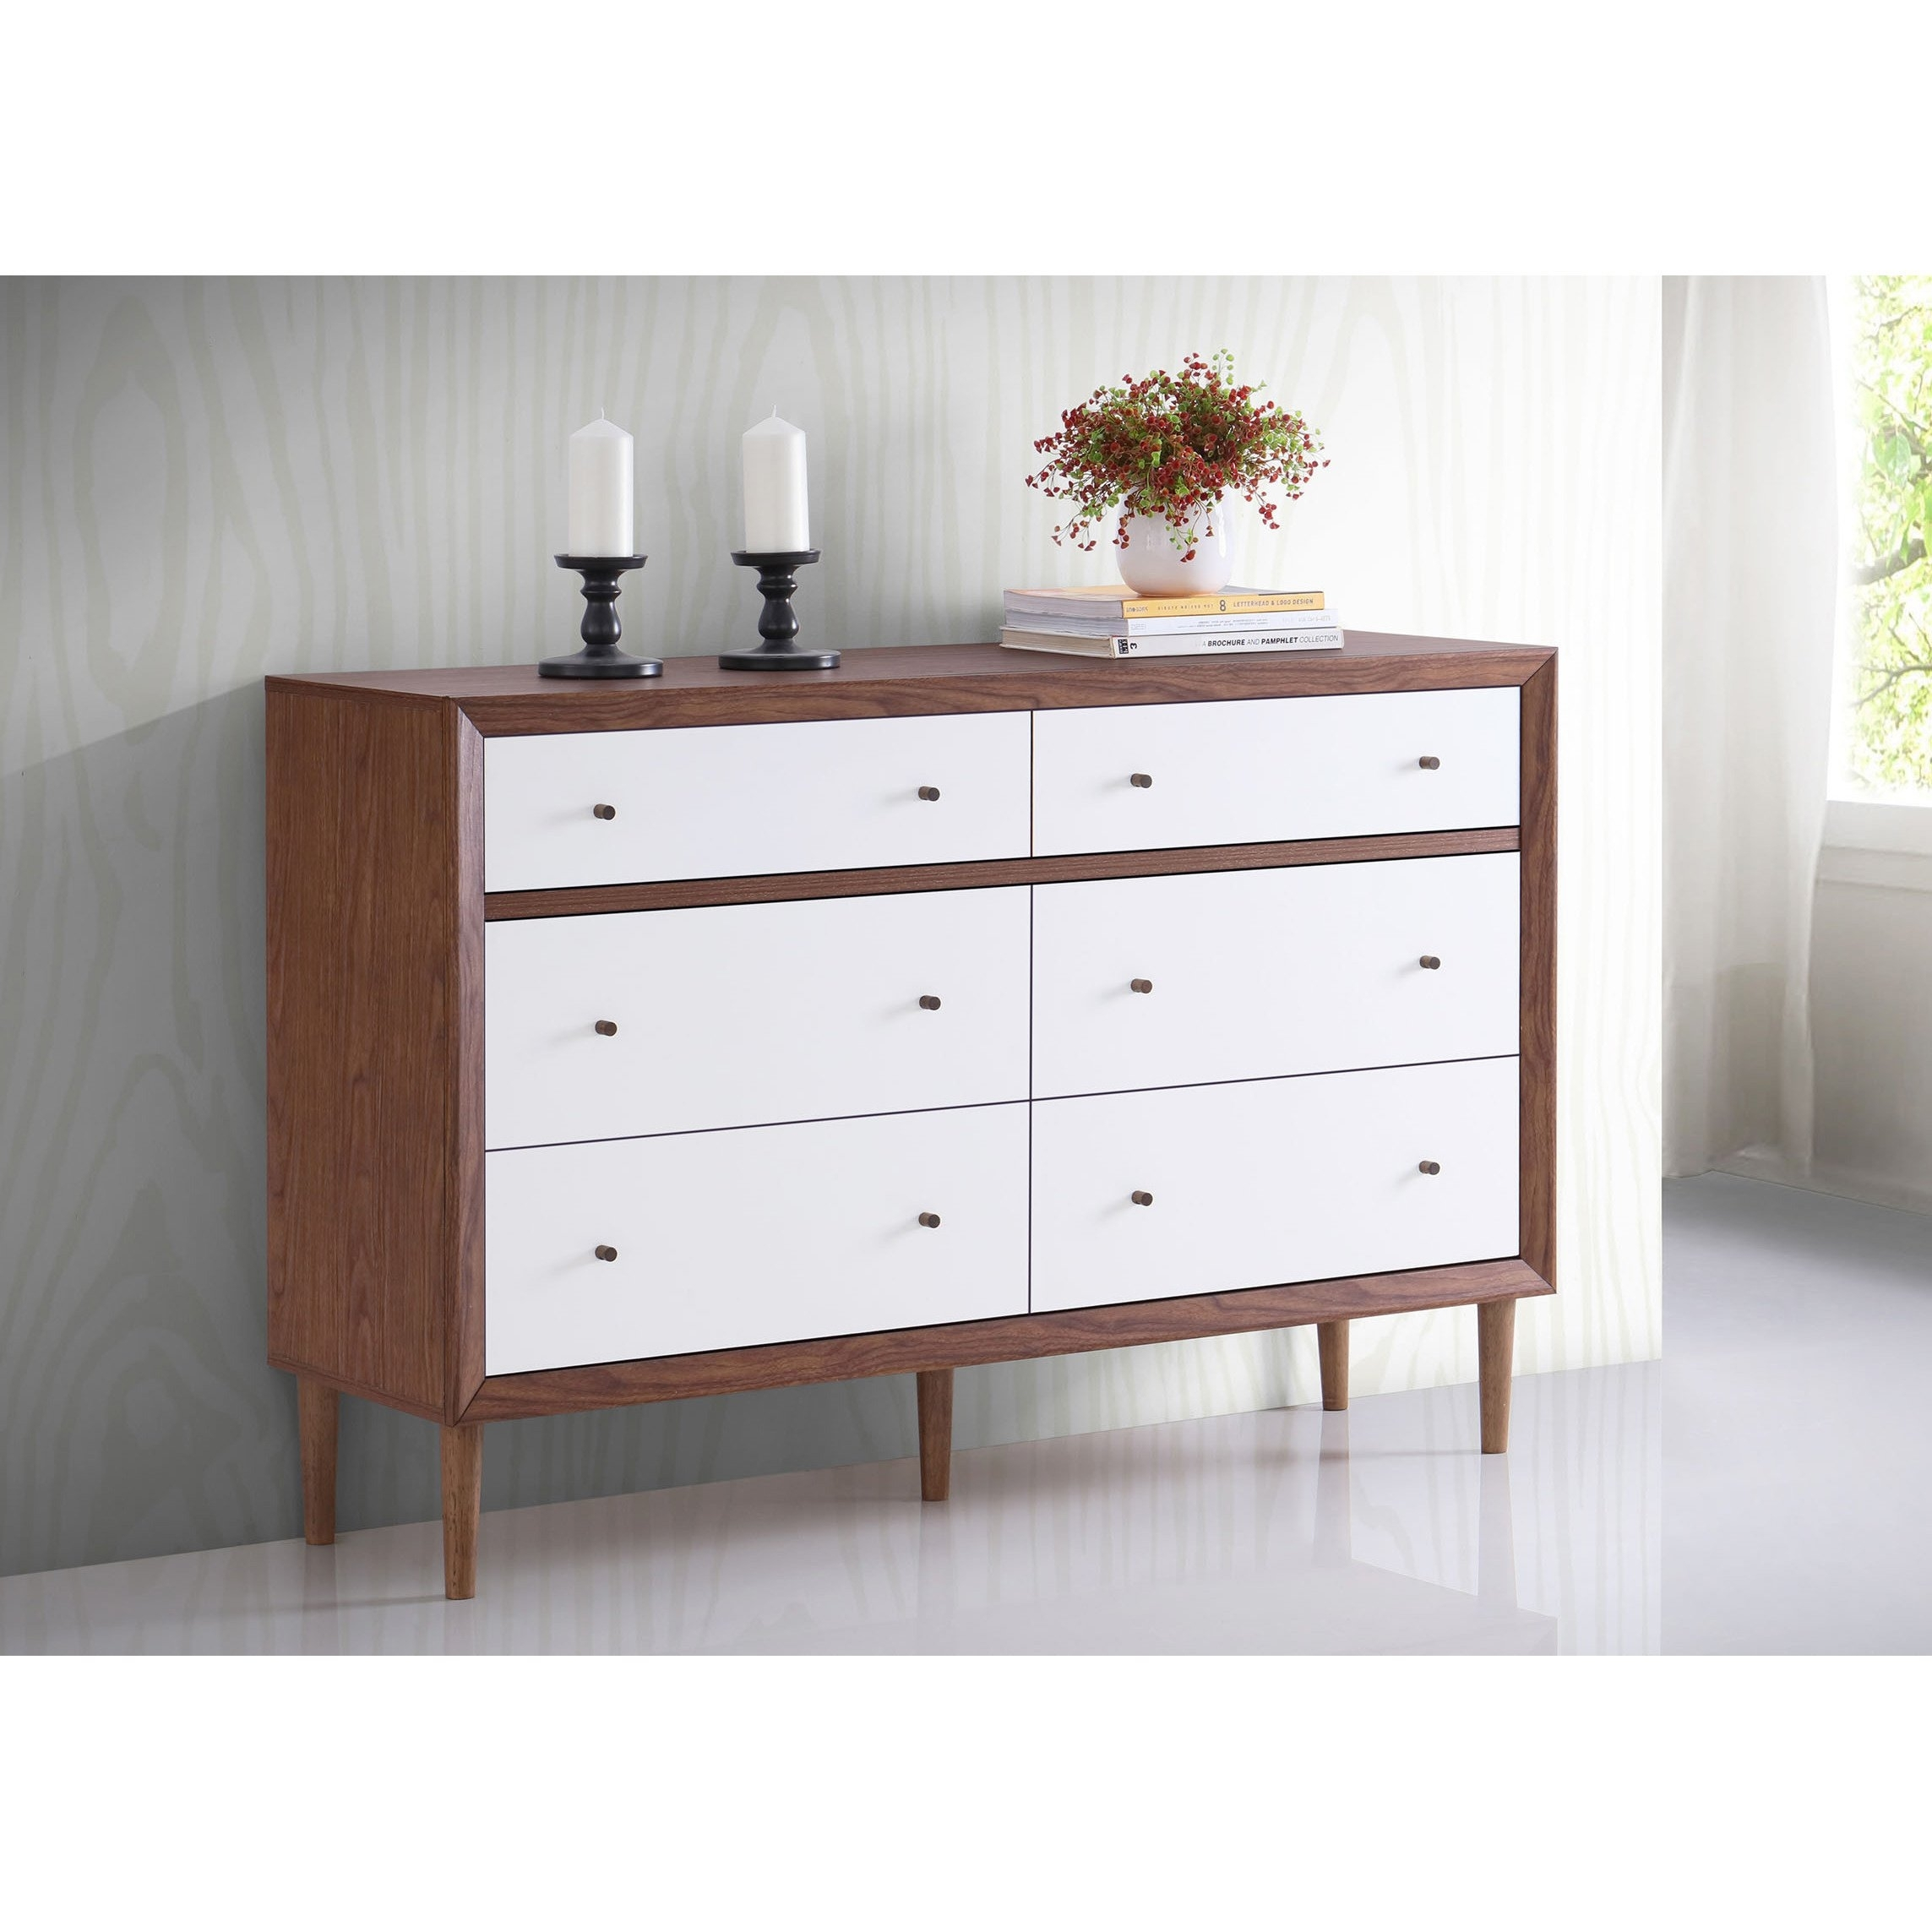 Shop Baxton Studio Harlow Mid-Century Modern Scandinavian Style within Marbled Axton Sideboards (Image 20 of 26)